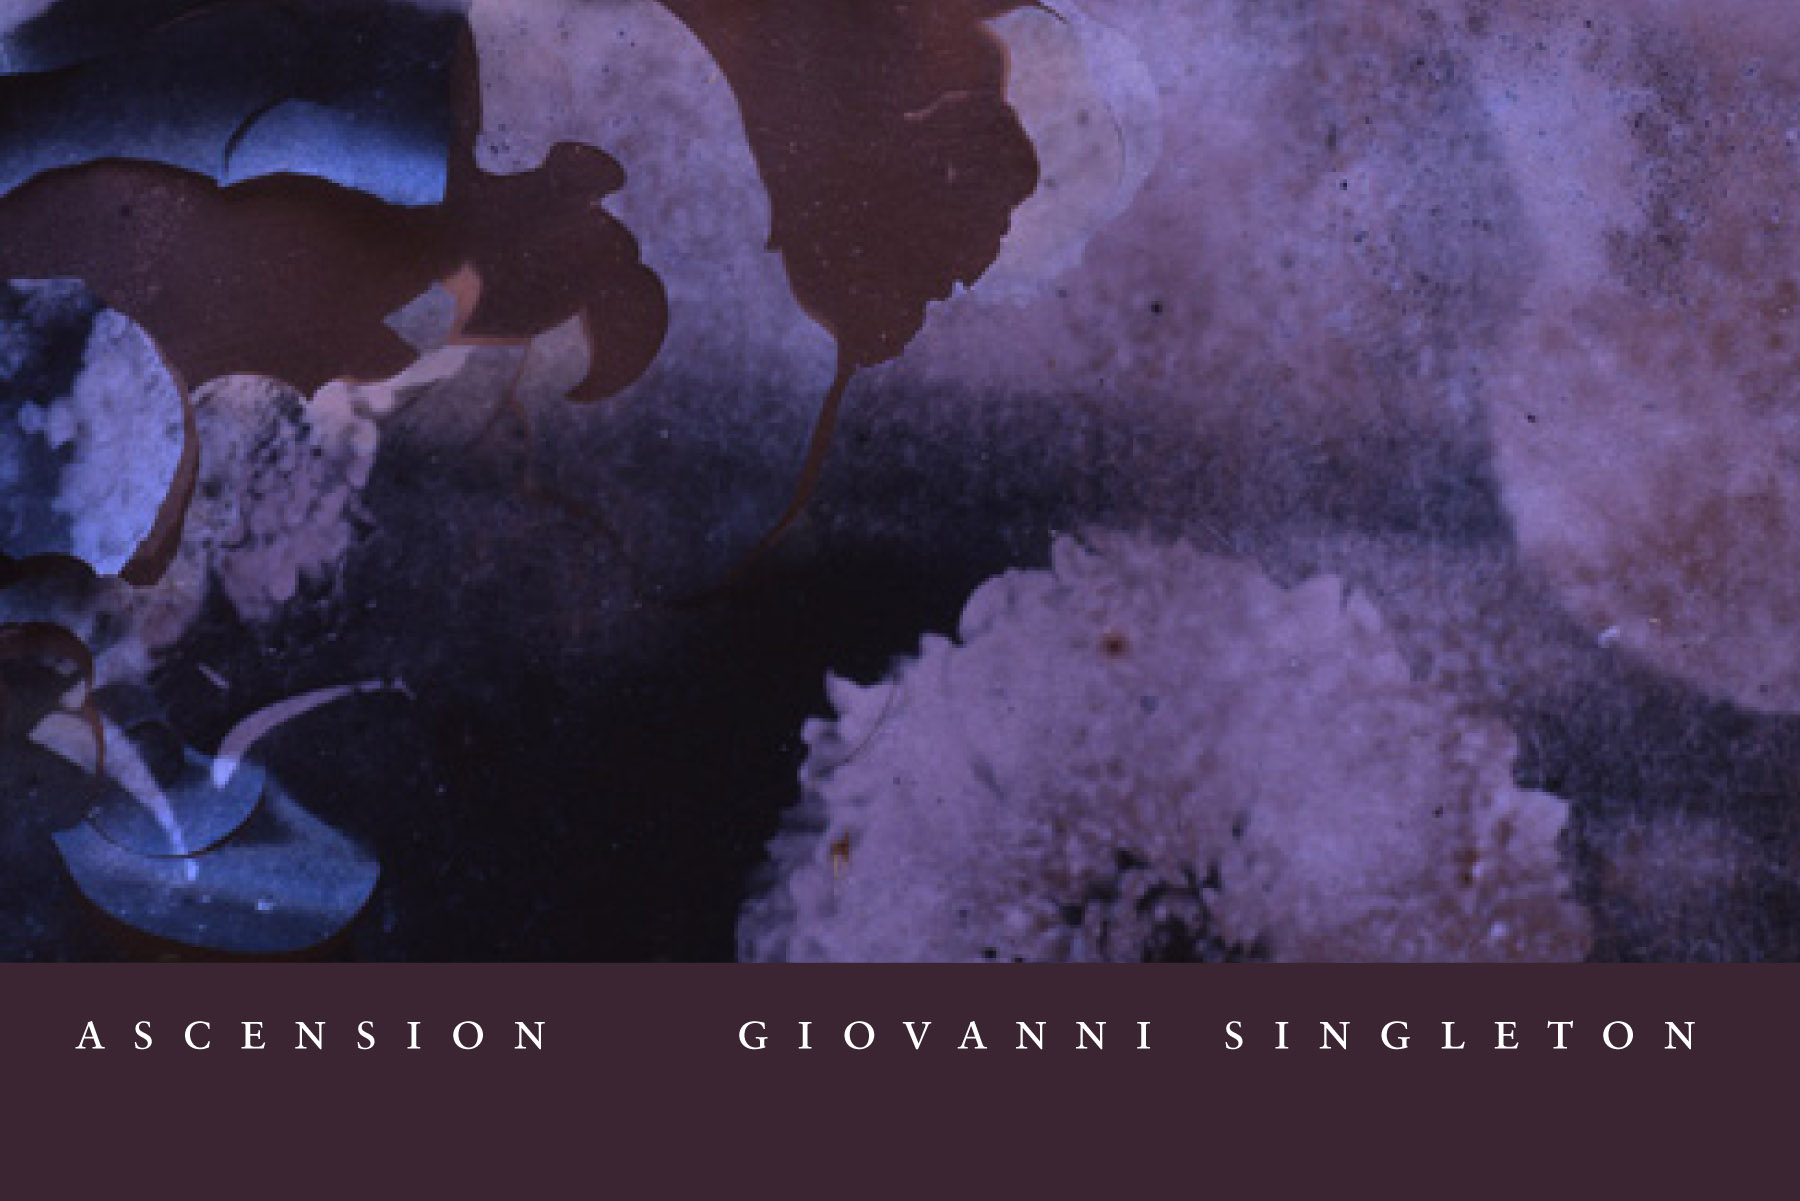 Ascension giovanni singletonWinner of the California Book Award